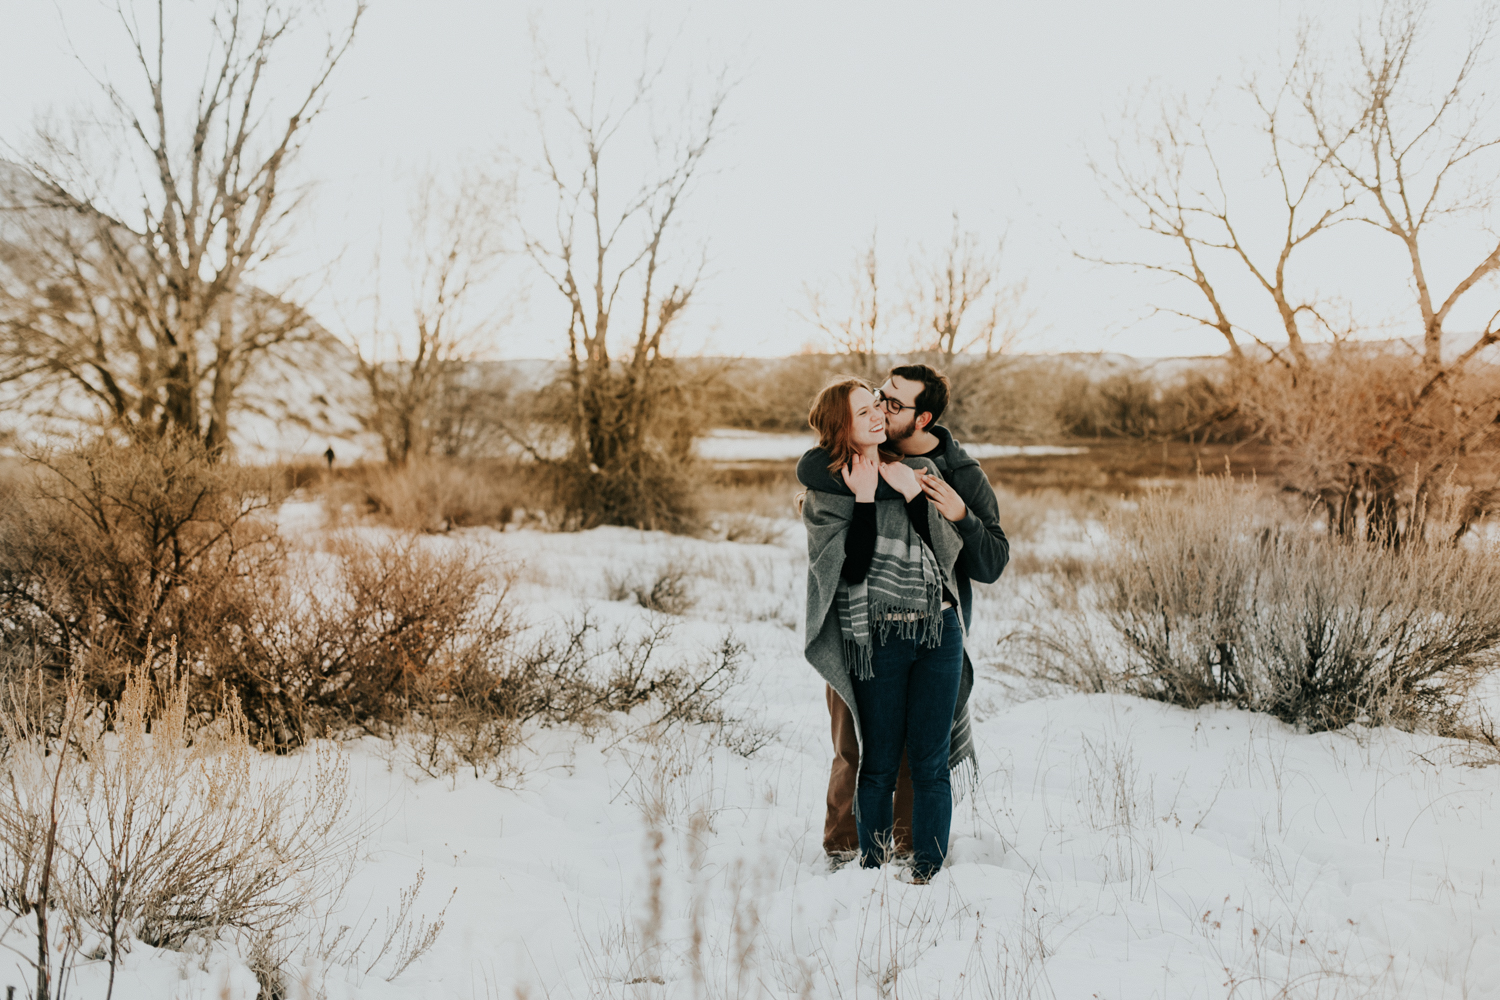 lethbridge-photography-love-and-be-loved-photographer-dan-tynnea-engagement-picture-image-photo-66.jpg